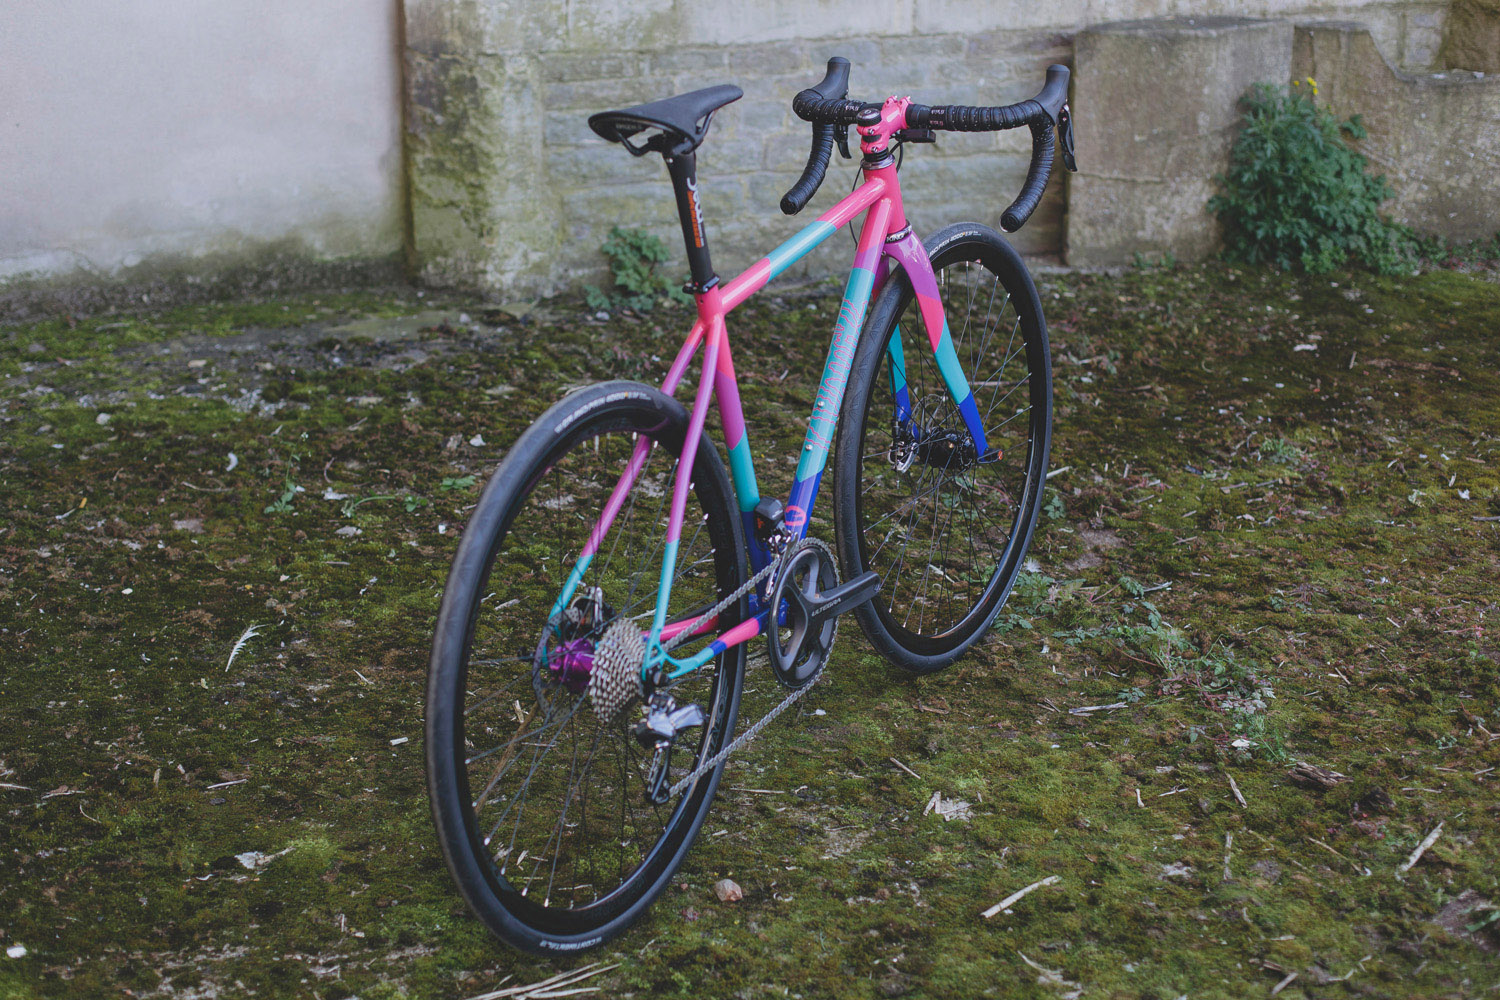 quirk_cycles_eleanors_tcr_dazzler_JPEG_0004.jpg